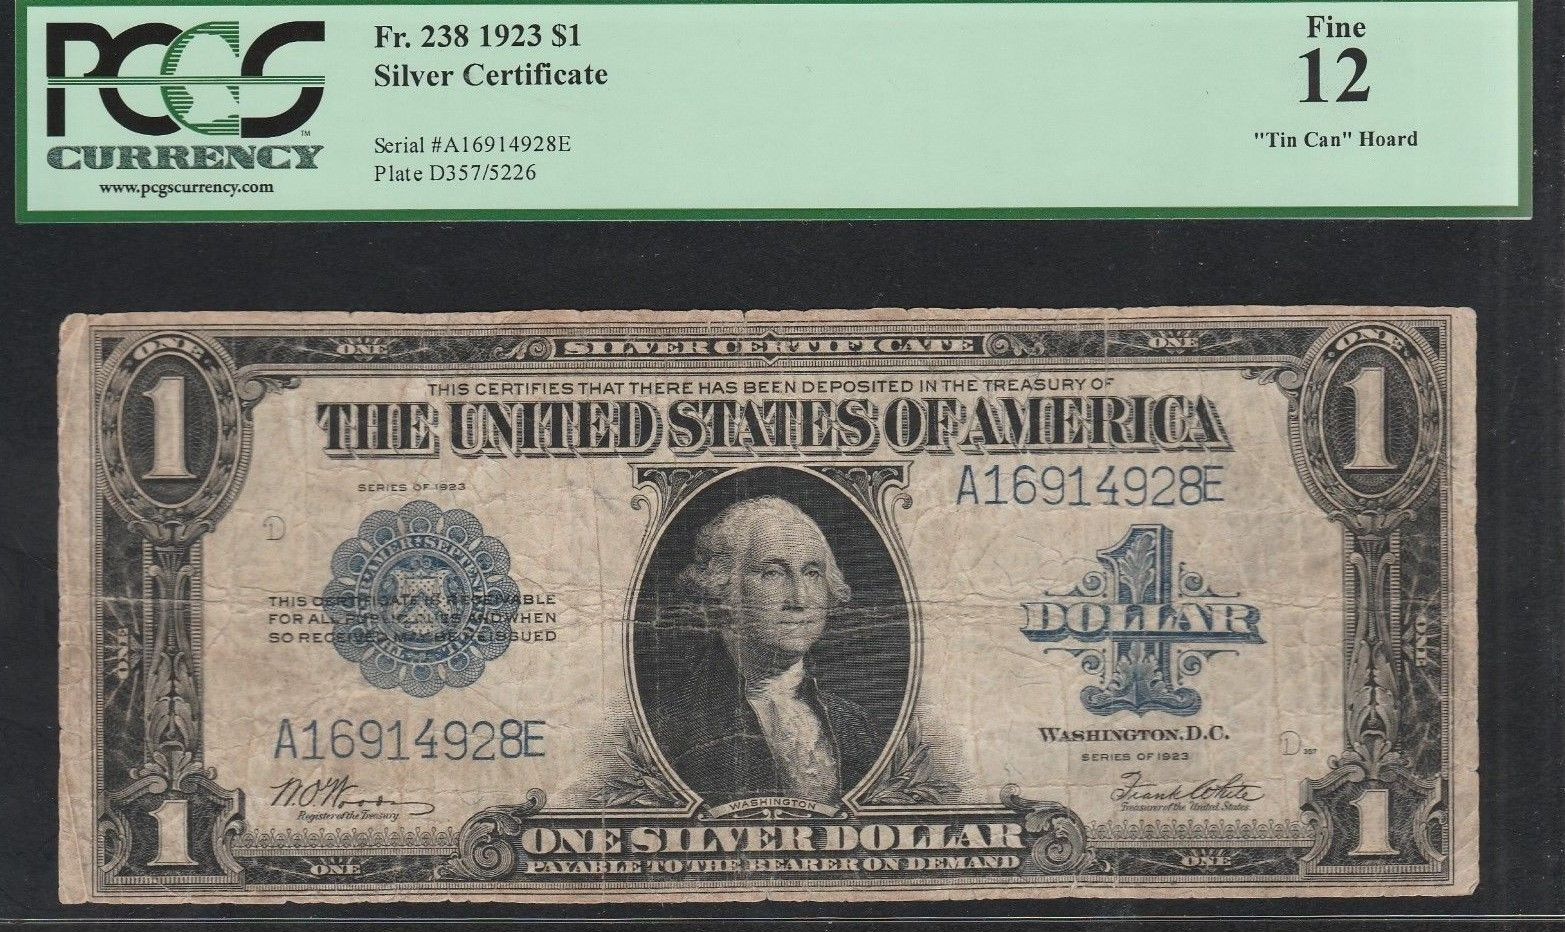 1 1923 SILVER CERTIFICATE LARGE SIZE PCGS 12 TIN CAN HOARD $22.08 obv.jpg